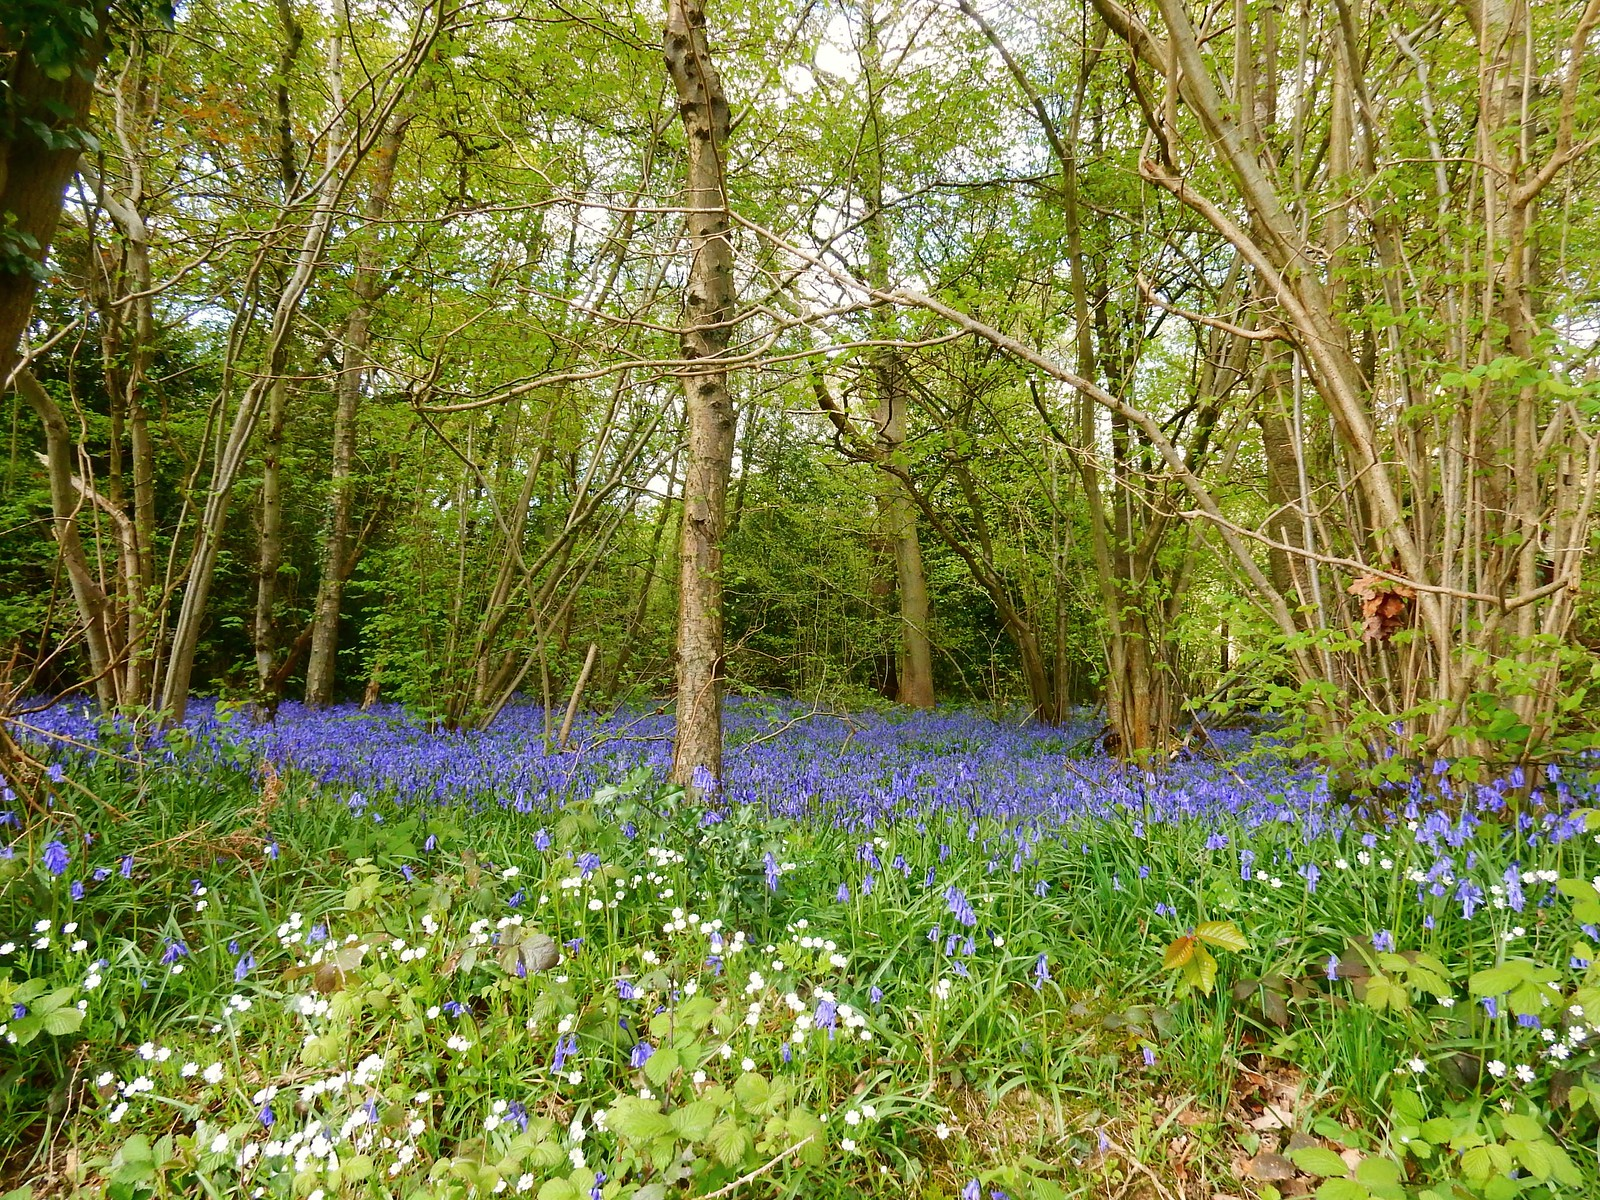 Bluebells, Kings Wood Whyteleafe to Woldingham